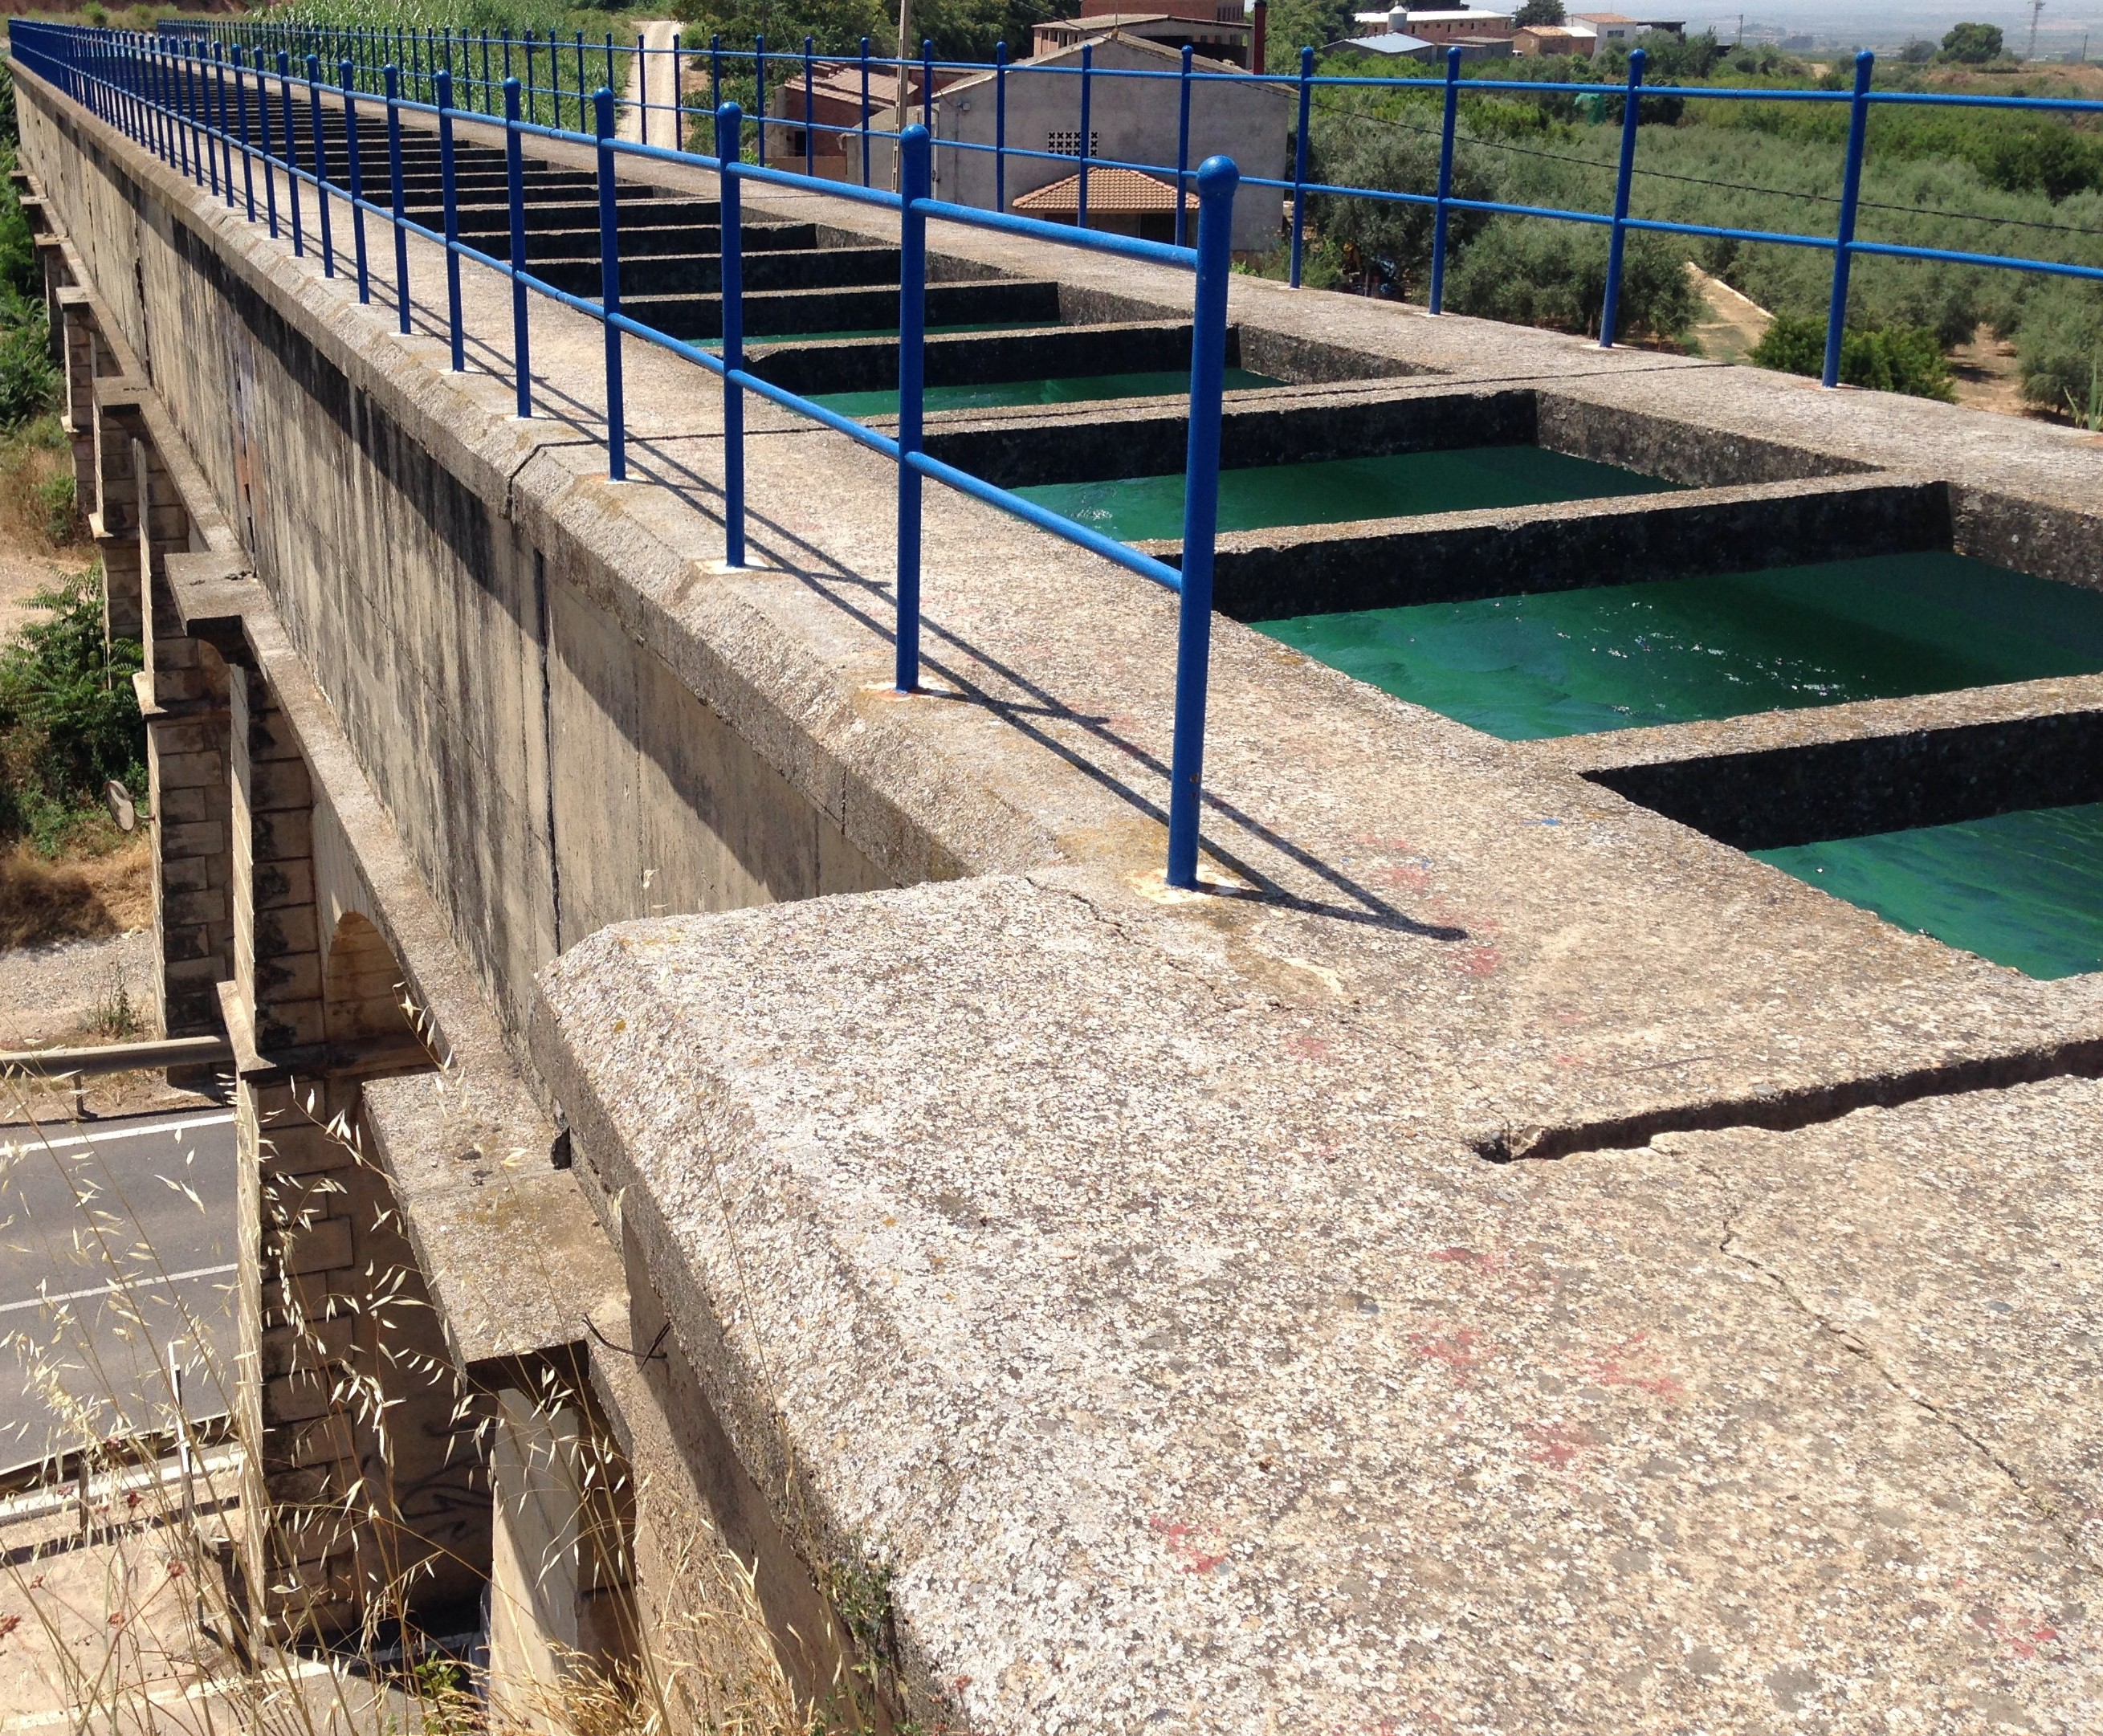 Smart Engineering begins the study of two structures from the Aragon and Cataluña Canal: Coll del Foix and Capdevil aqueducts